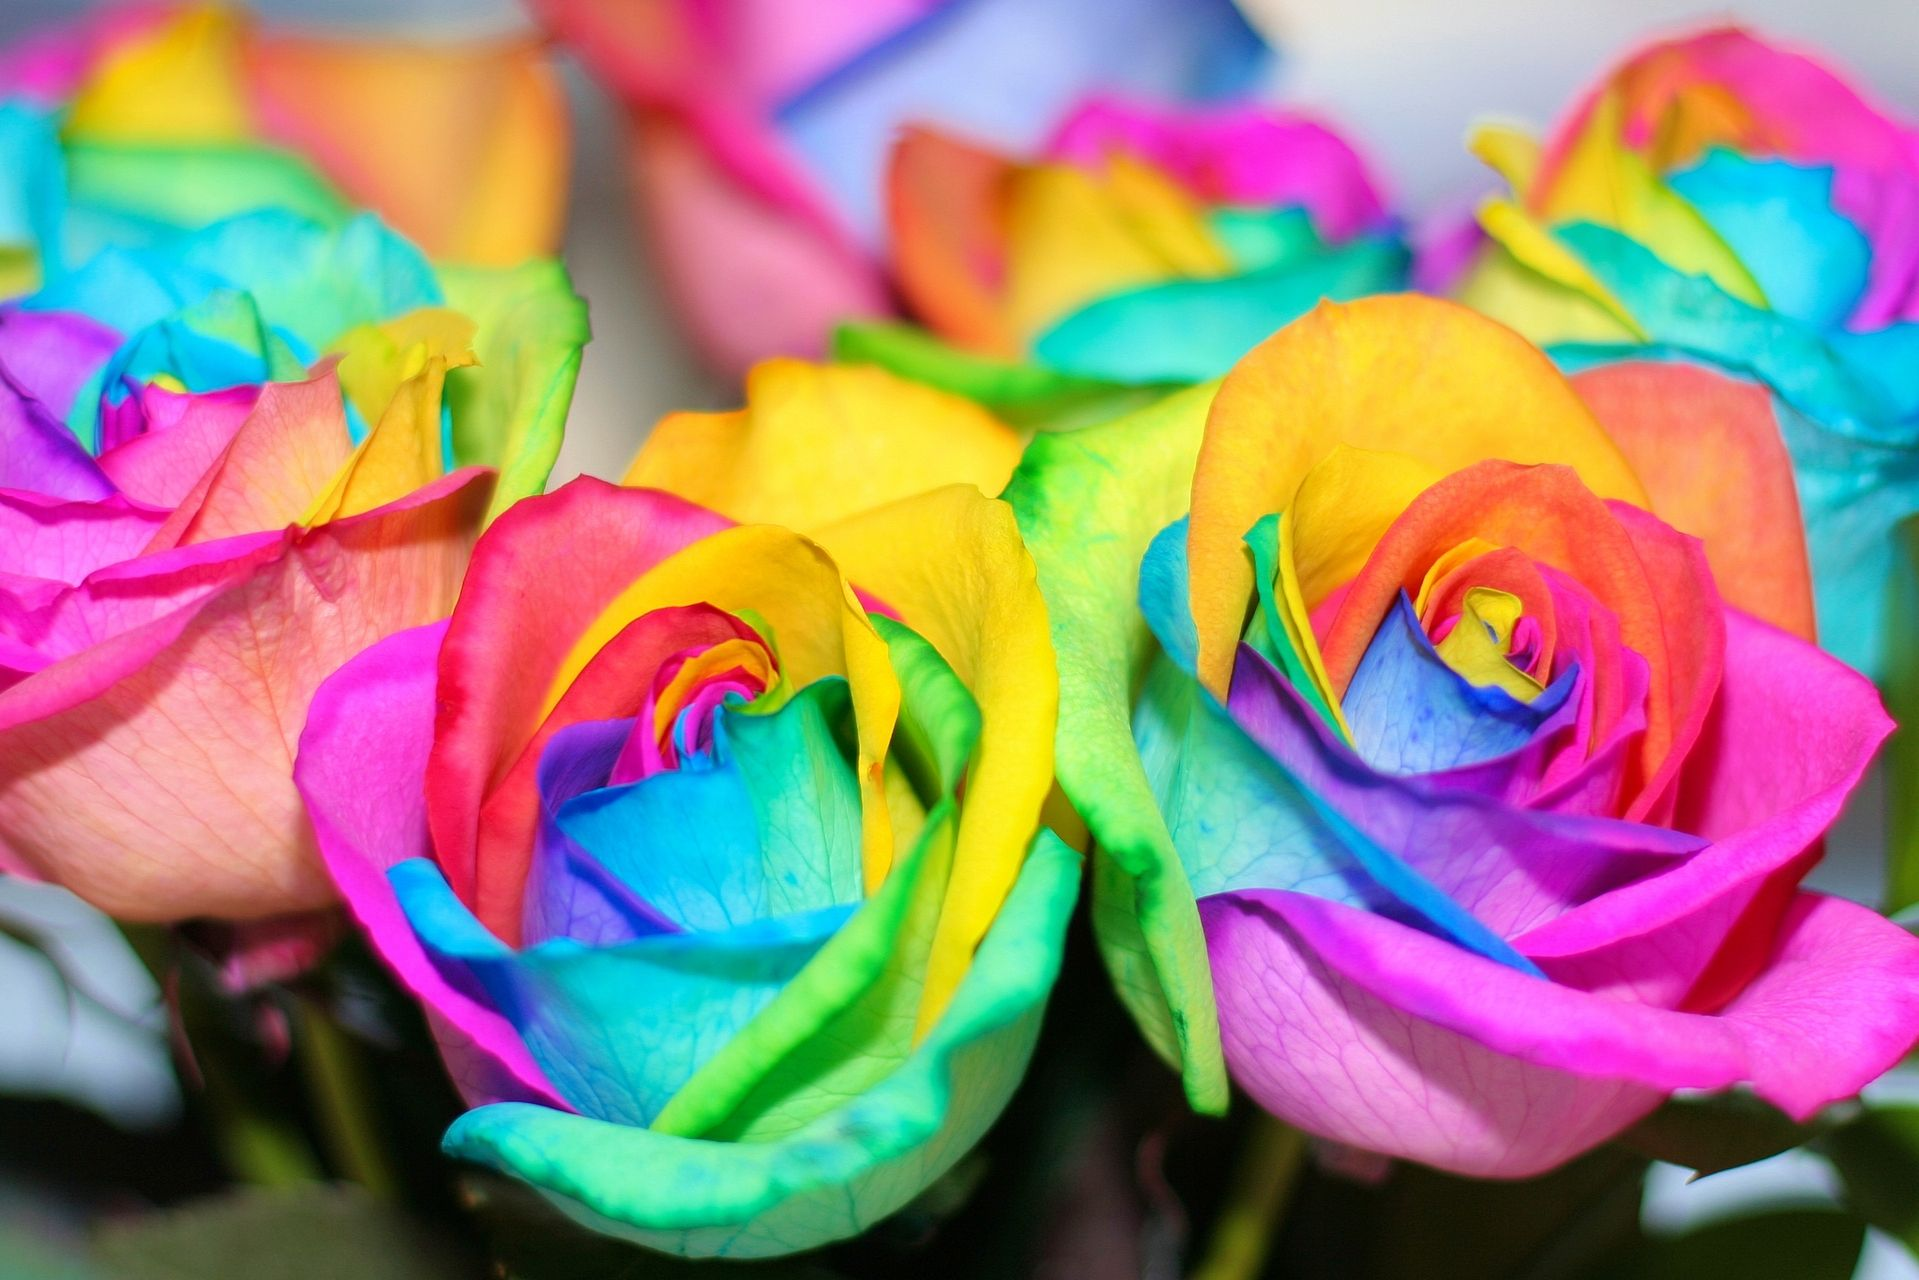 Rainbow Colored Roses Ogq Backgrounds Hd With Images Rainbow